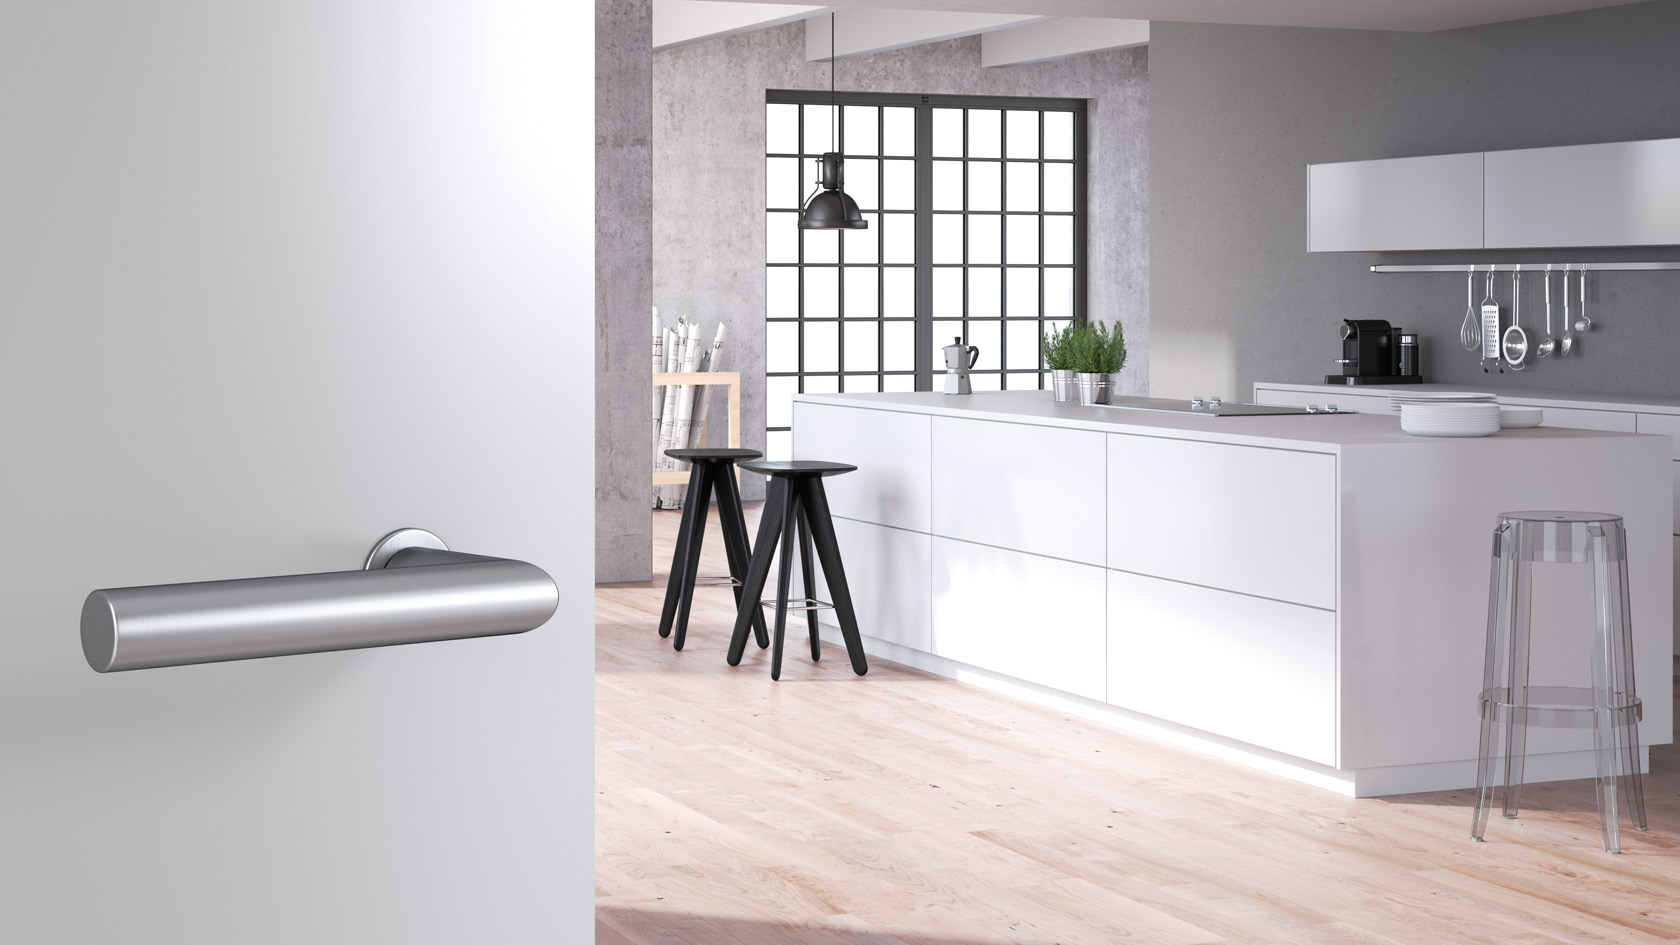 mini, minimalism, lever handle, satin stainless steel